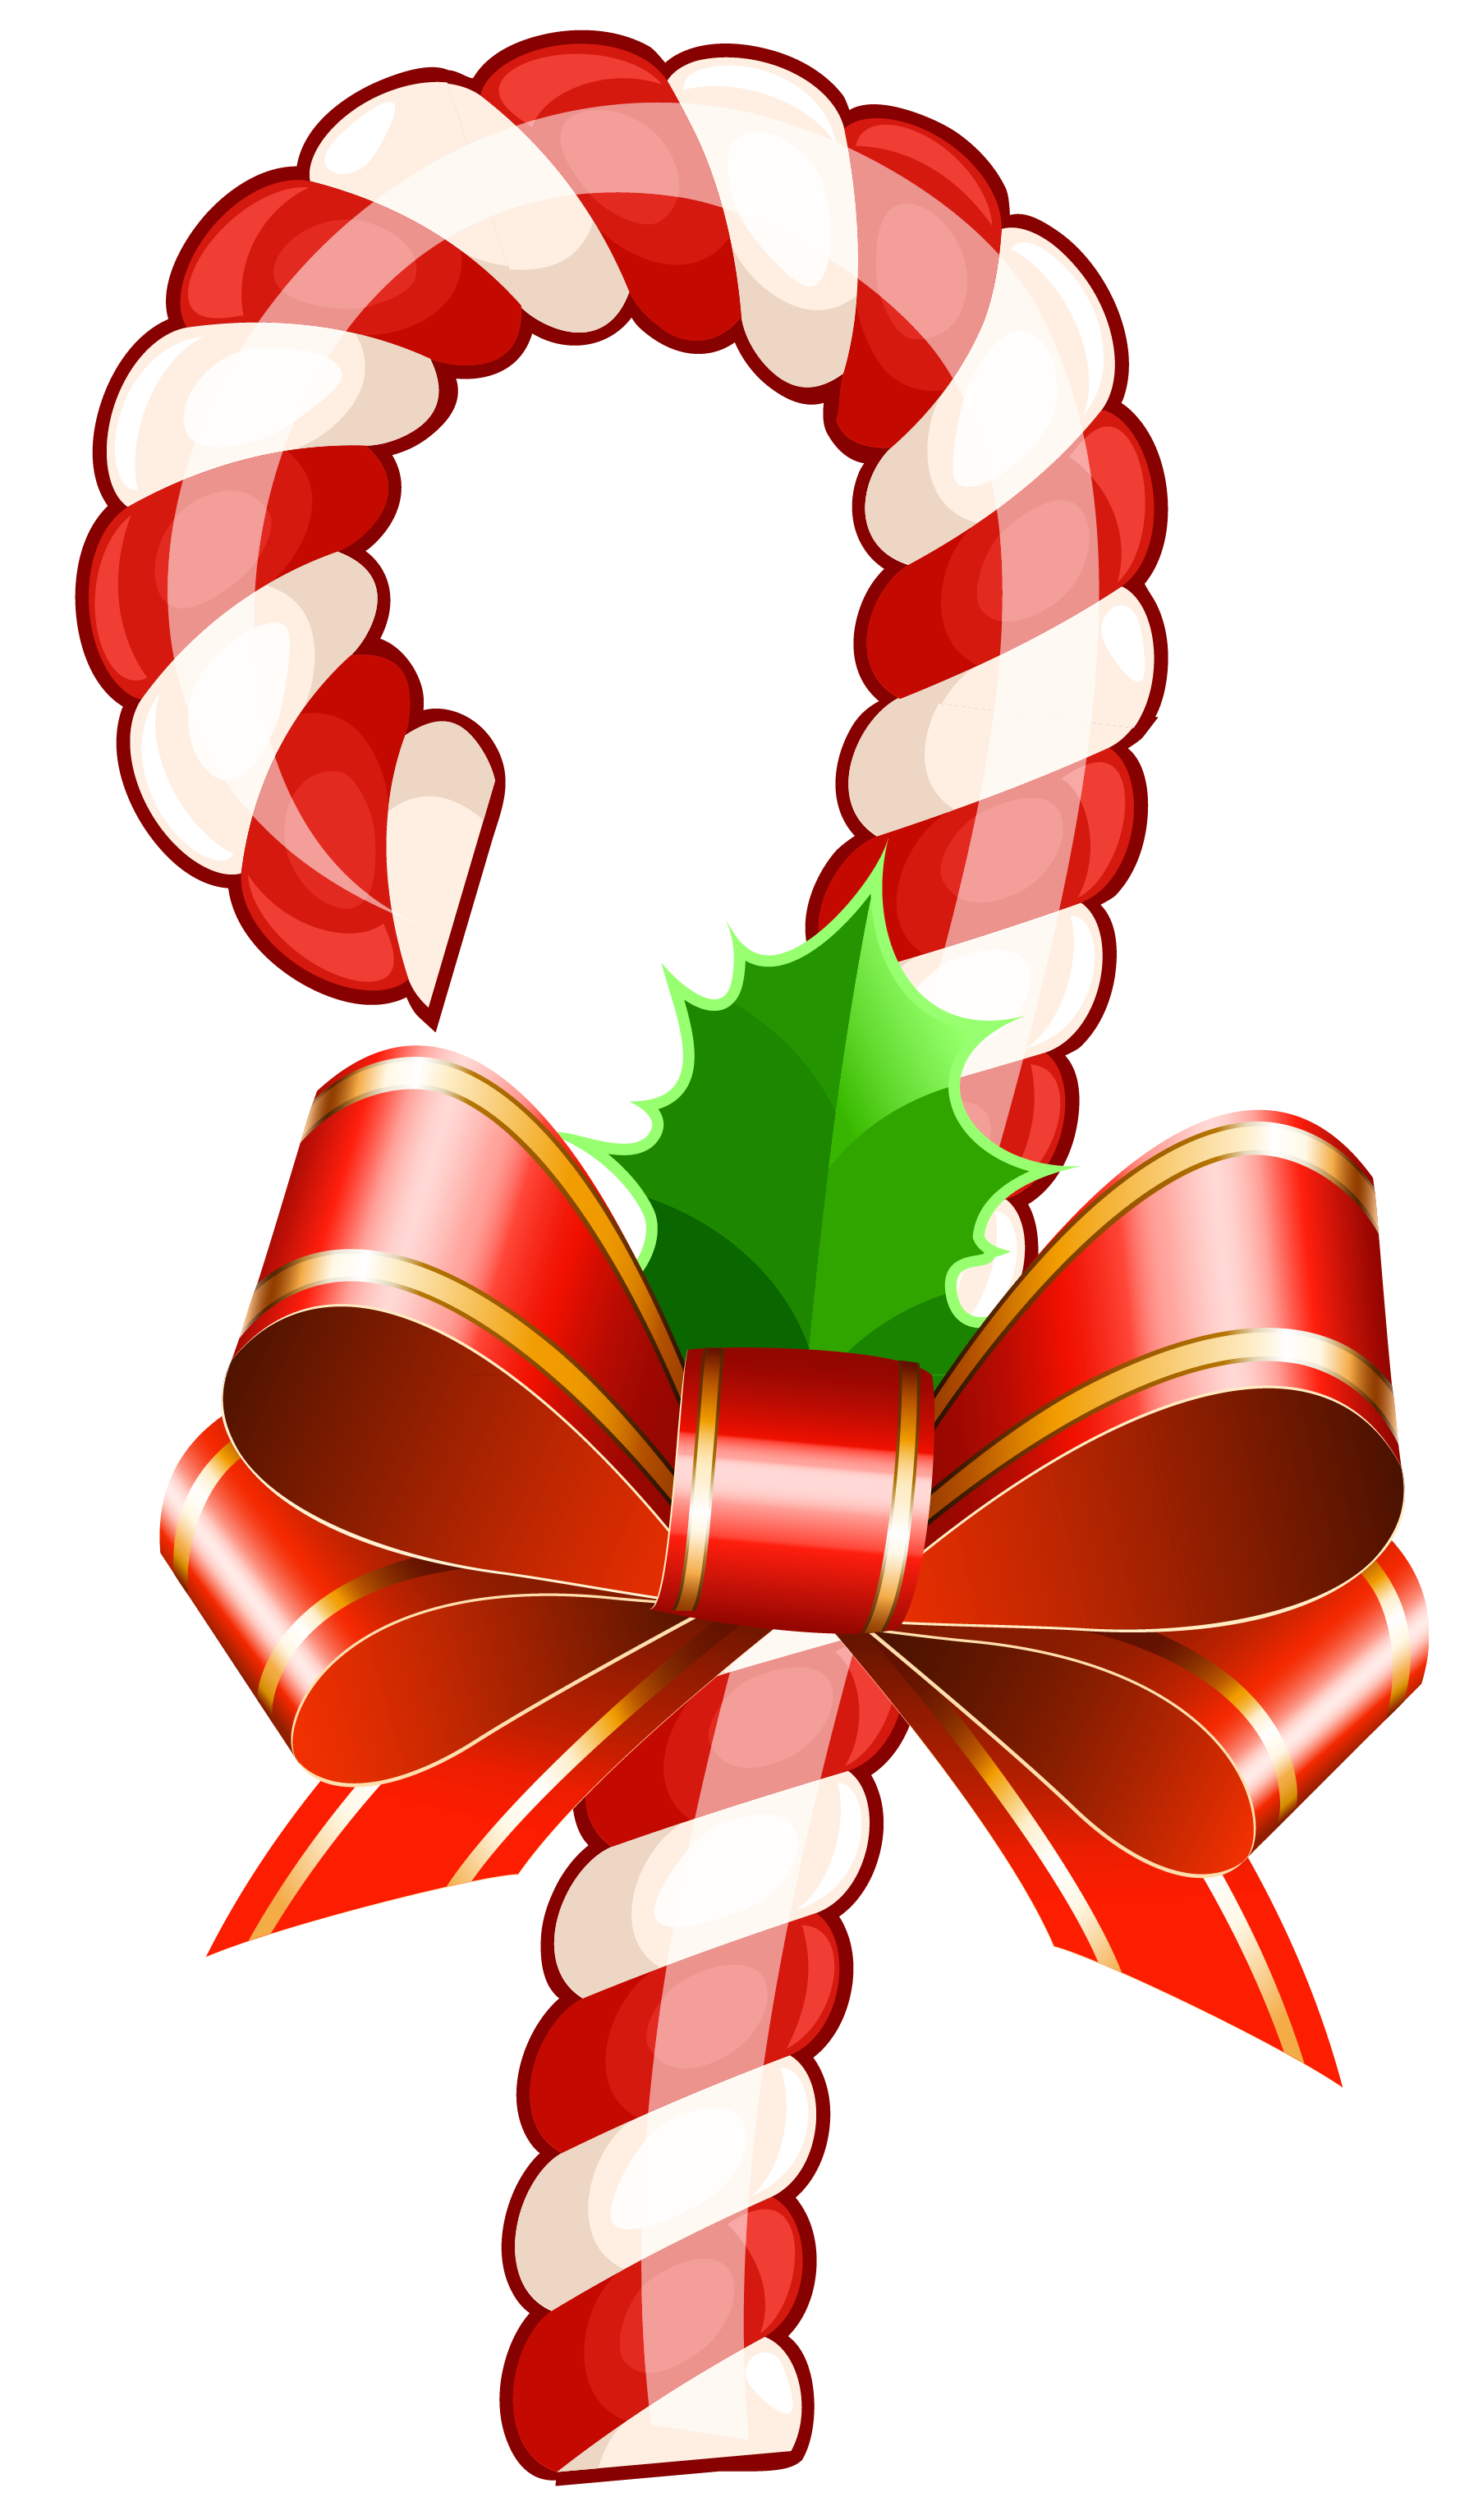 banner download Png google search library. Cane clipart gingerbread candy.